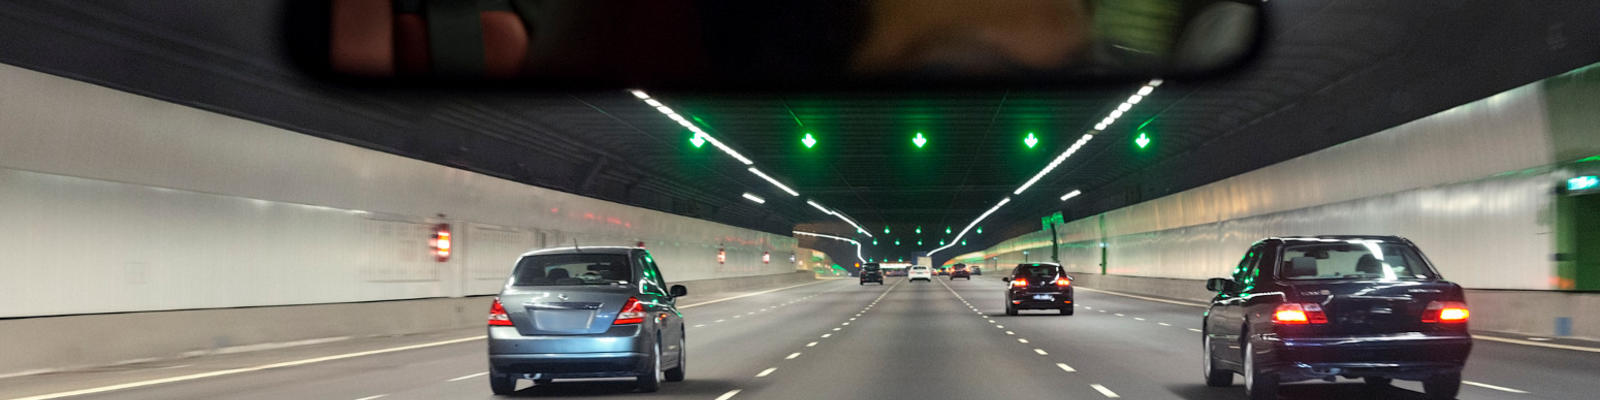 A view of cars driving through a tunnel from the point of view of a driver of the car at the rear